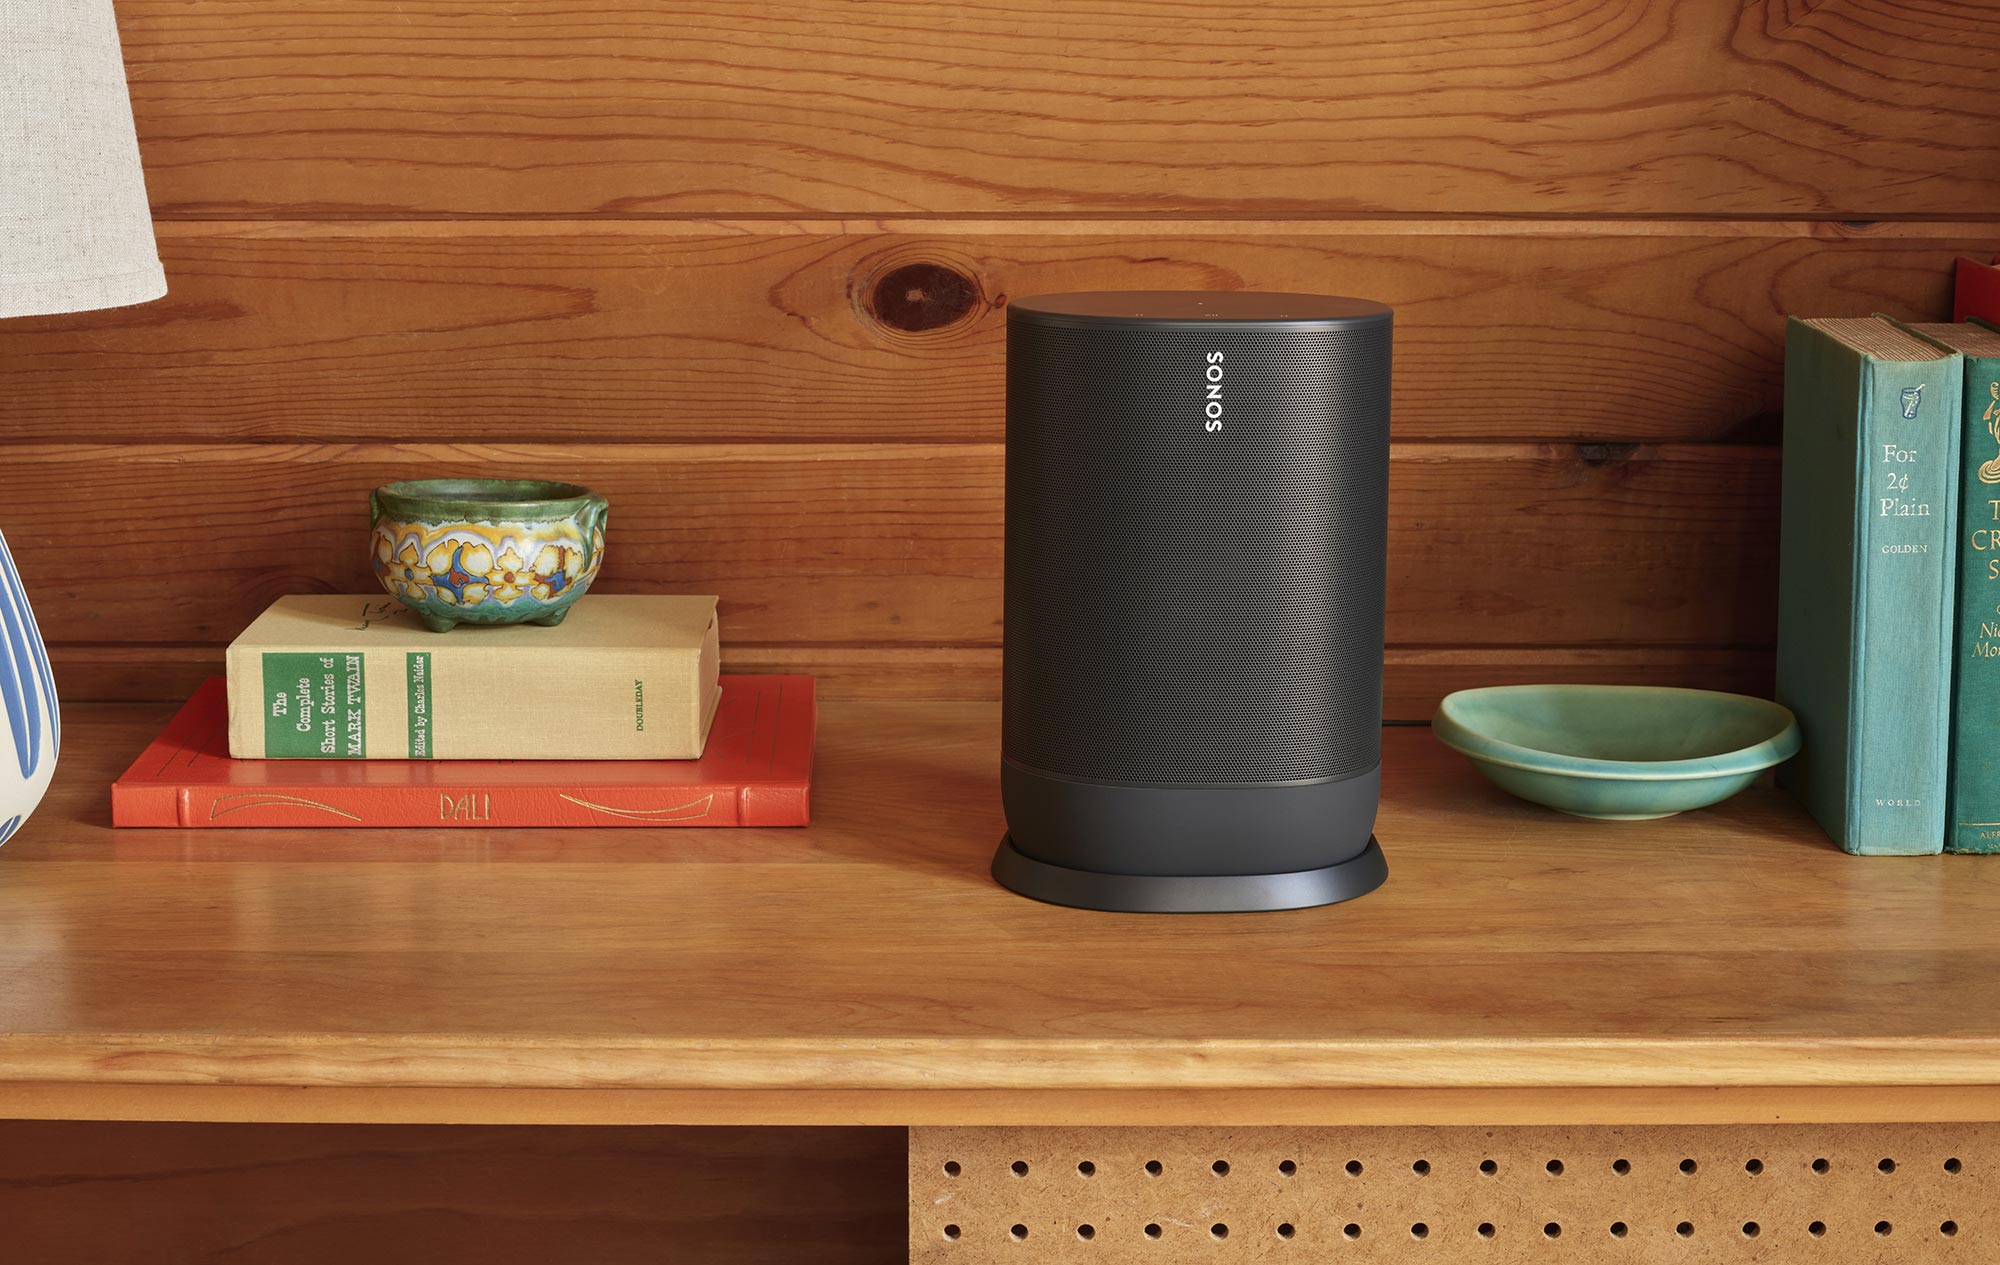 Sonos launches an $8/month streaming radio service